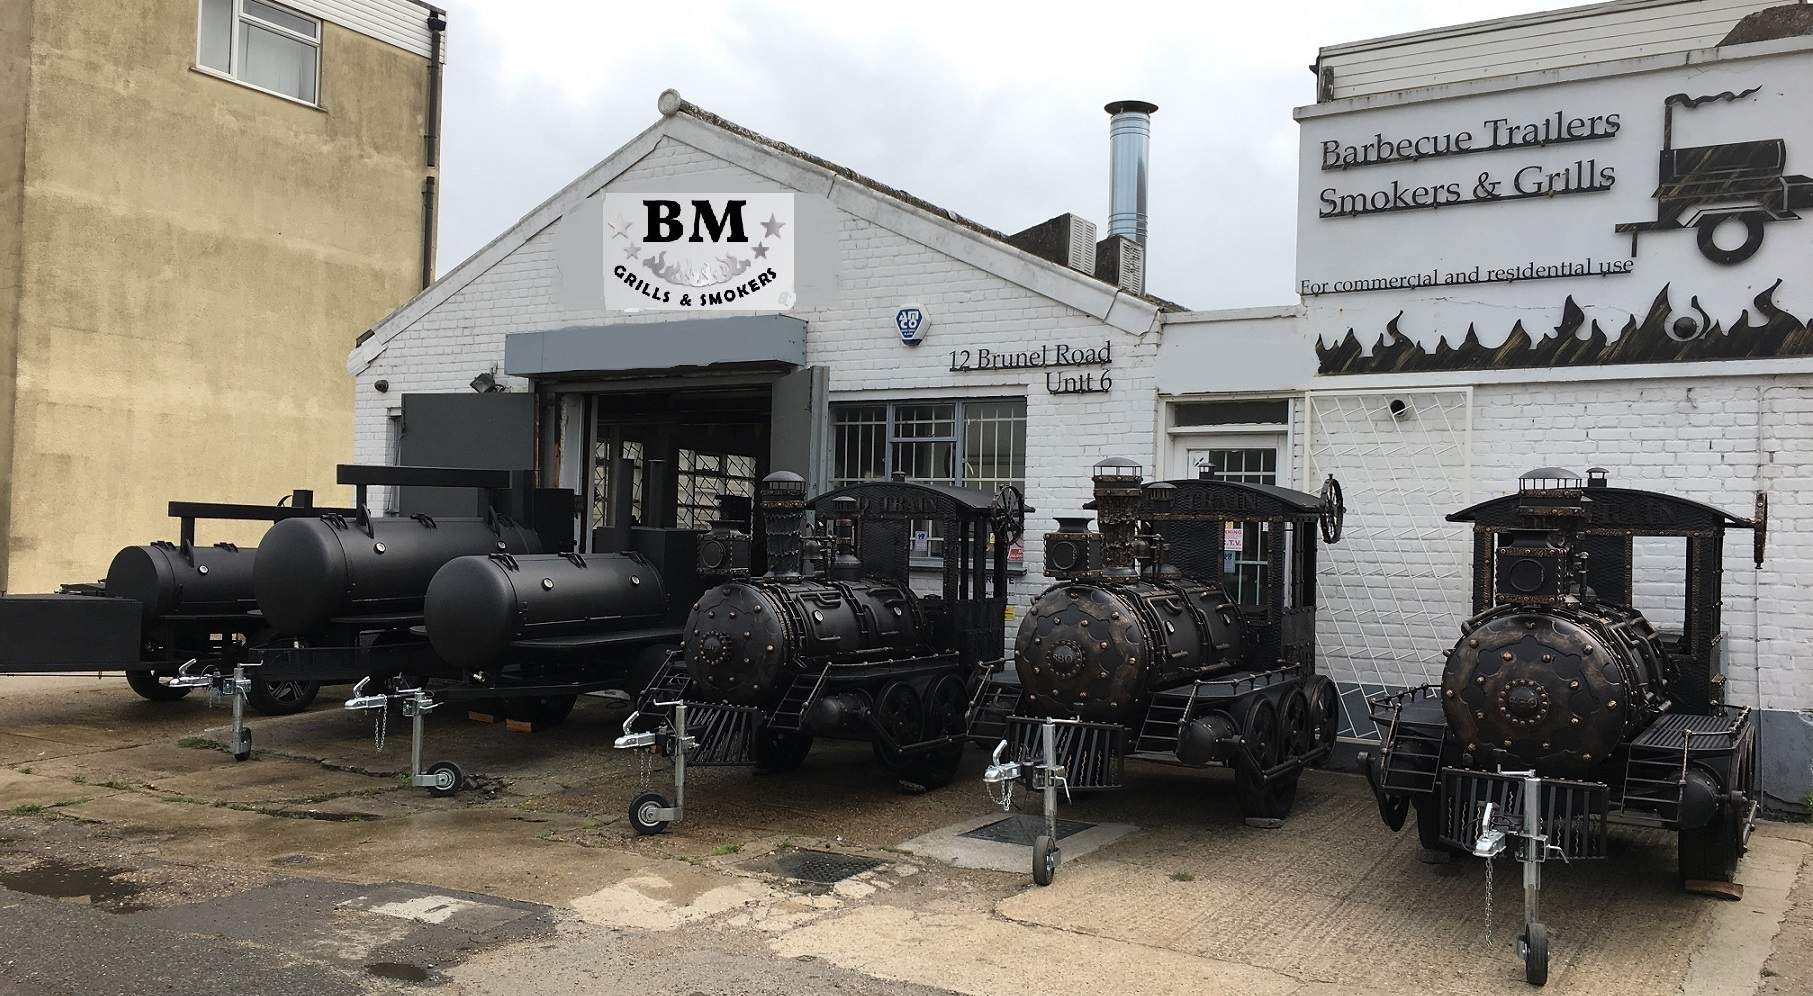 Welcome to BM Barbecue Pits - BBQ mates